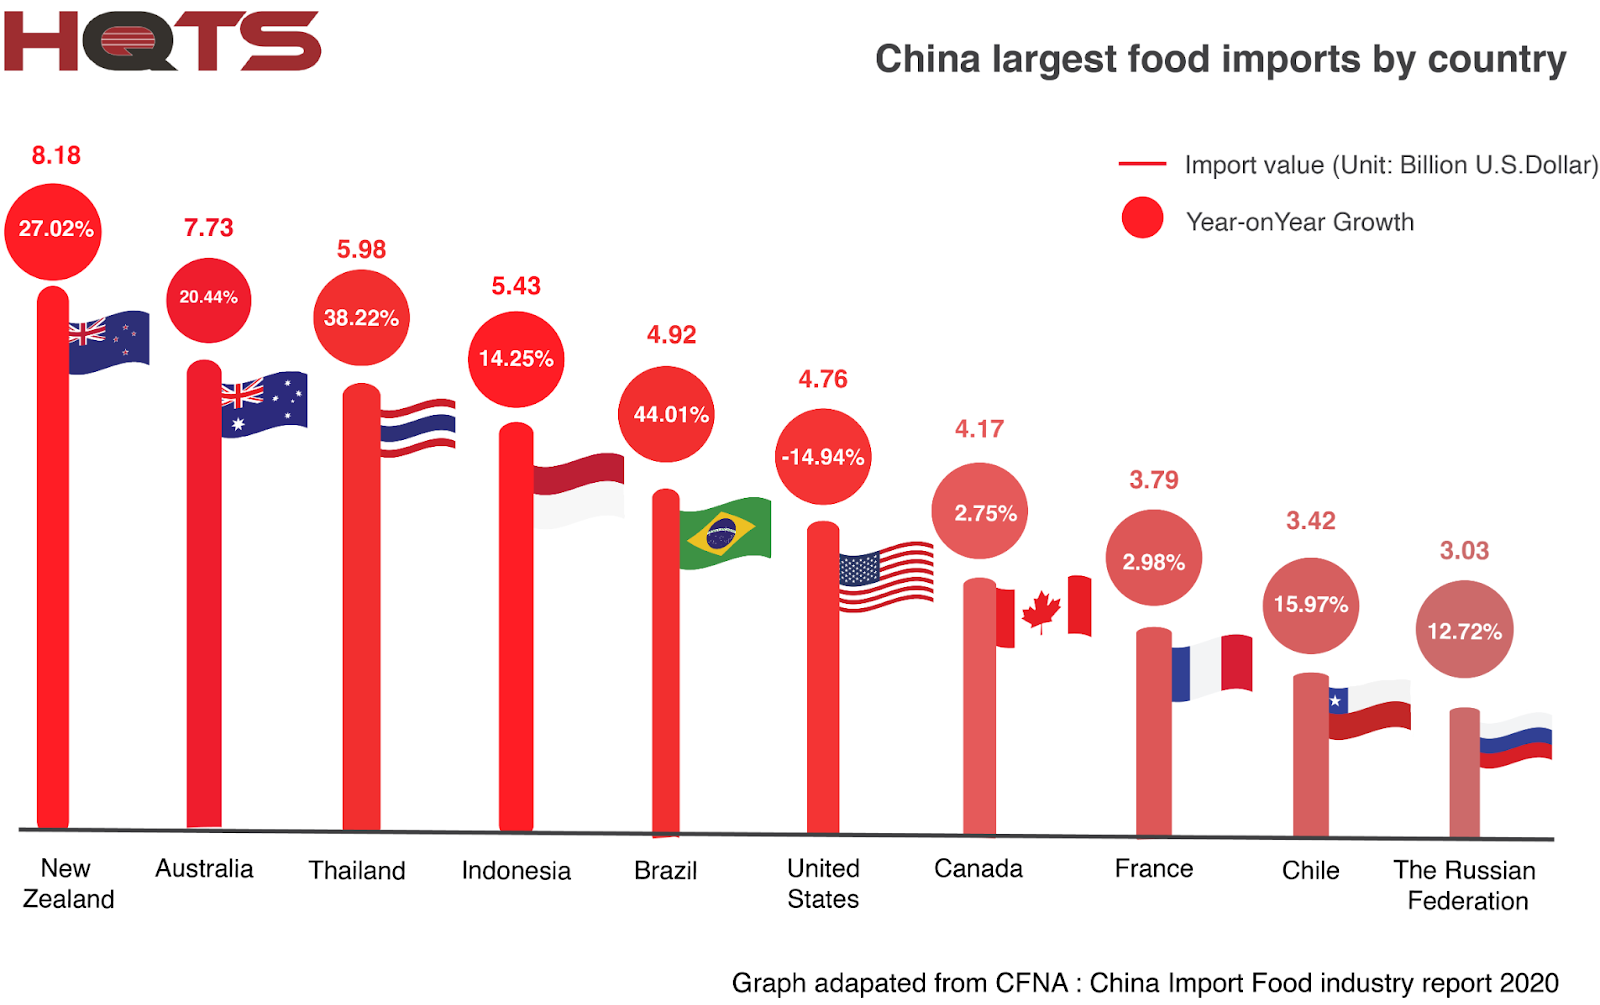 China food imports by country